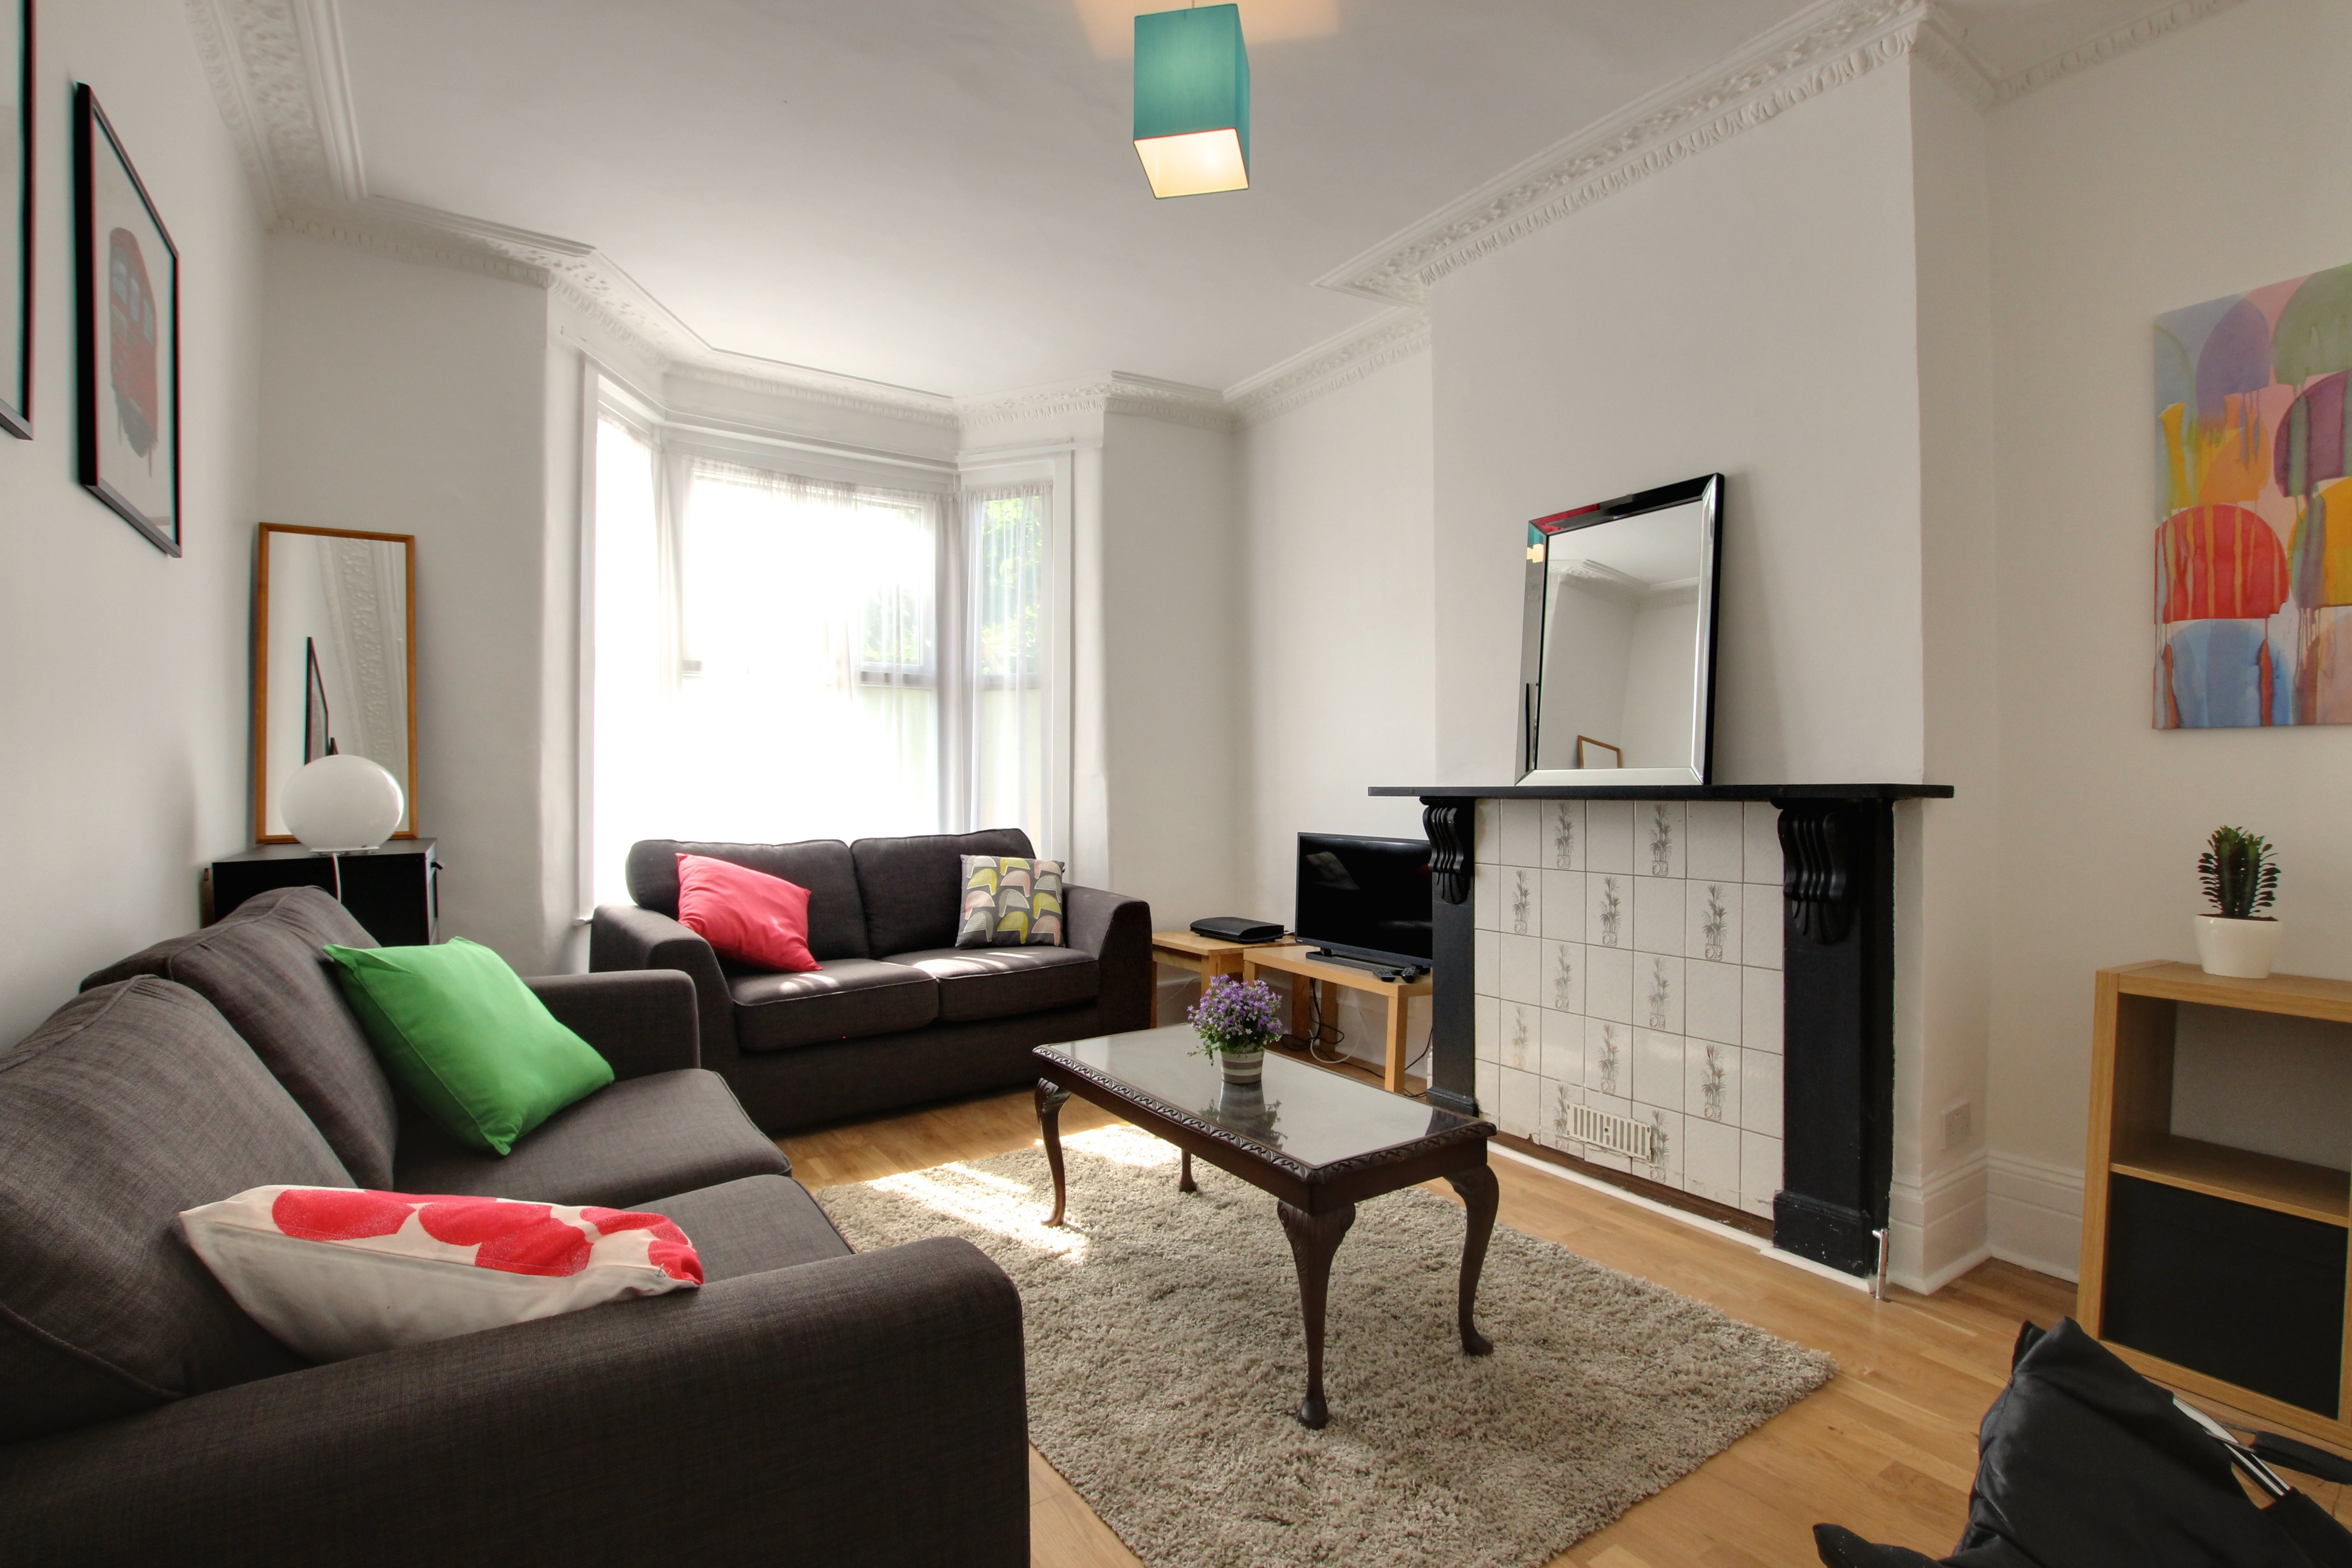 2 Bed Apartment to Rent - Hanover Road, London, N15 4DL